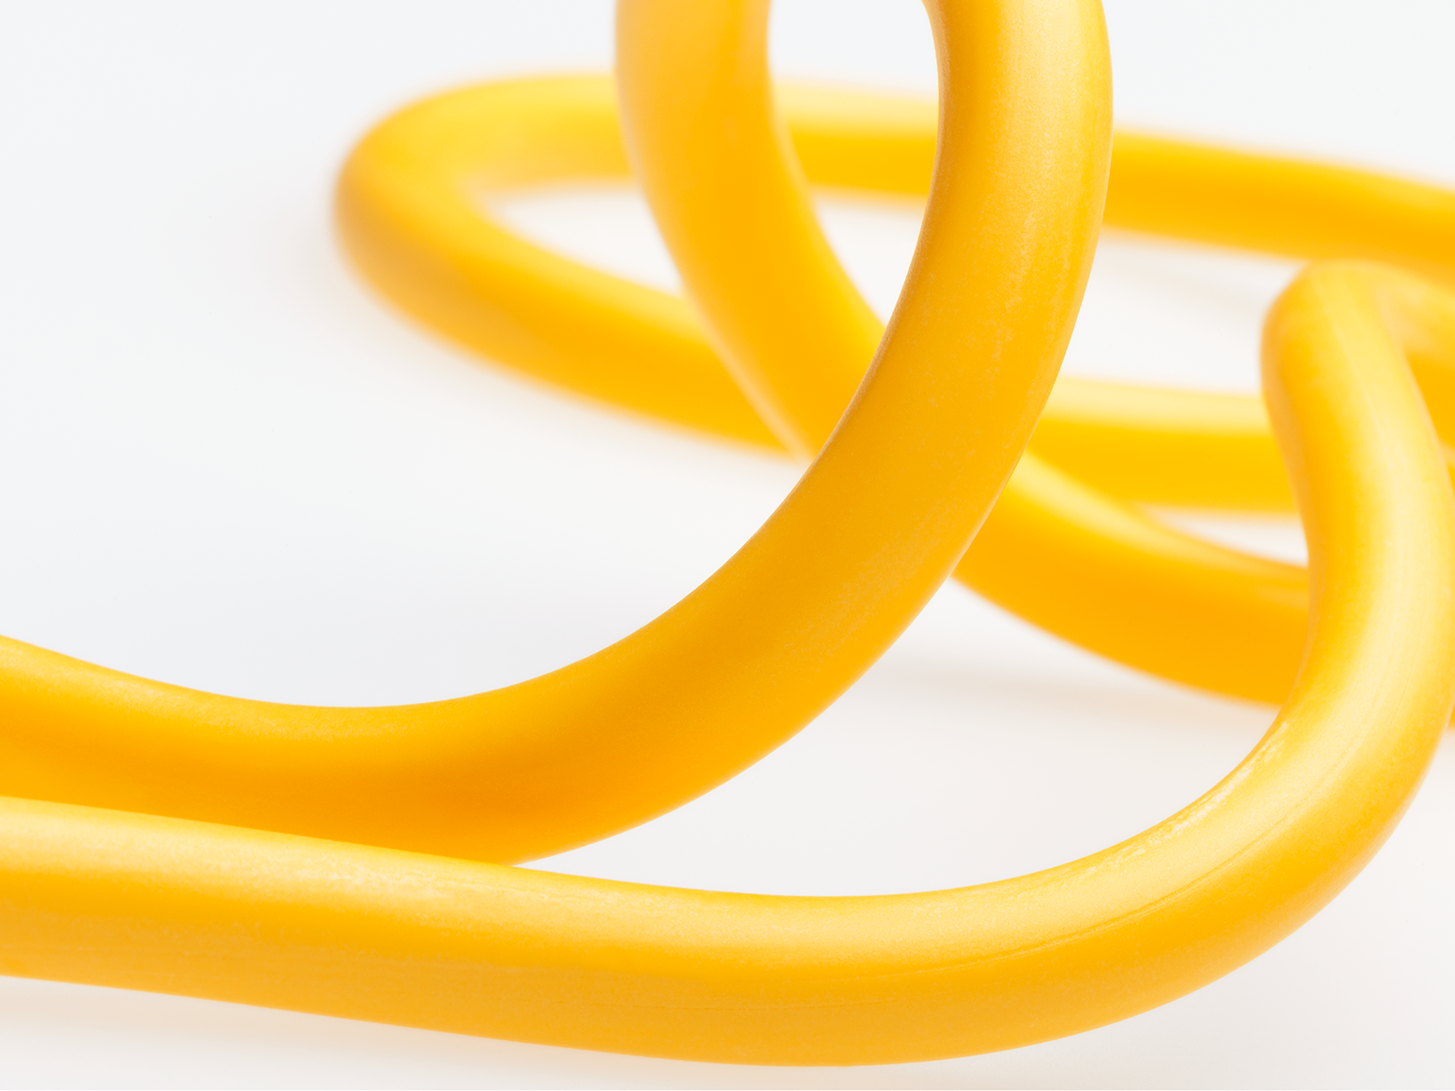 yellow plastic filament